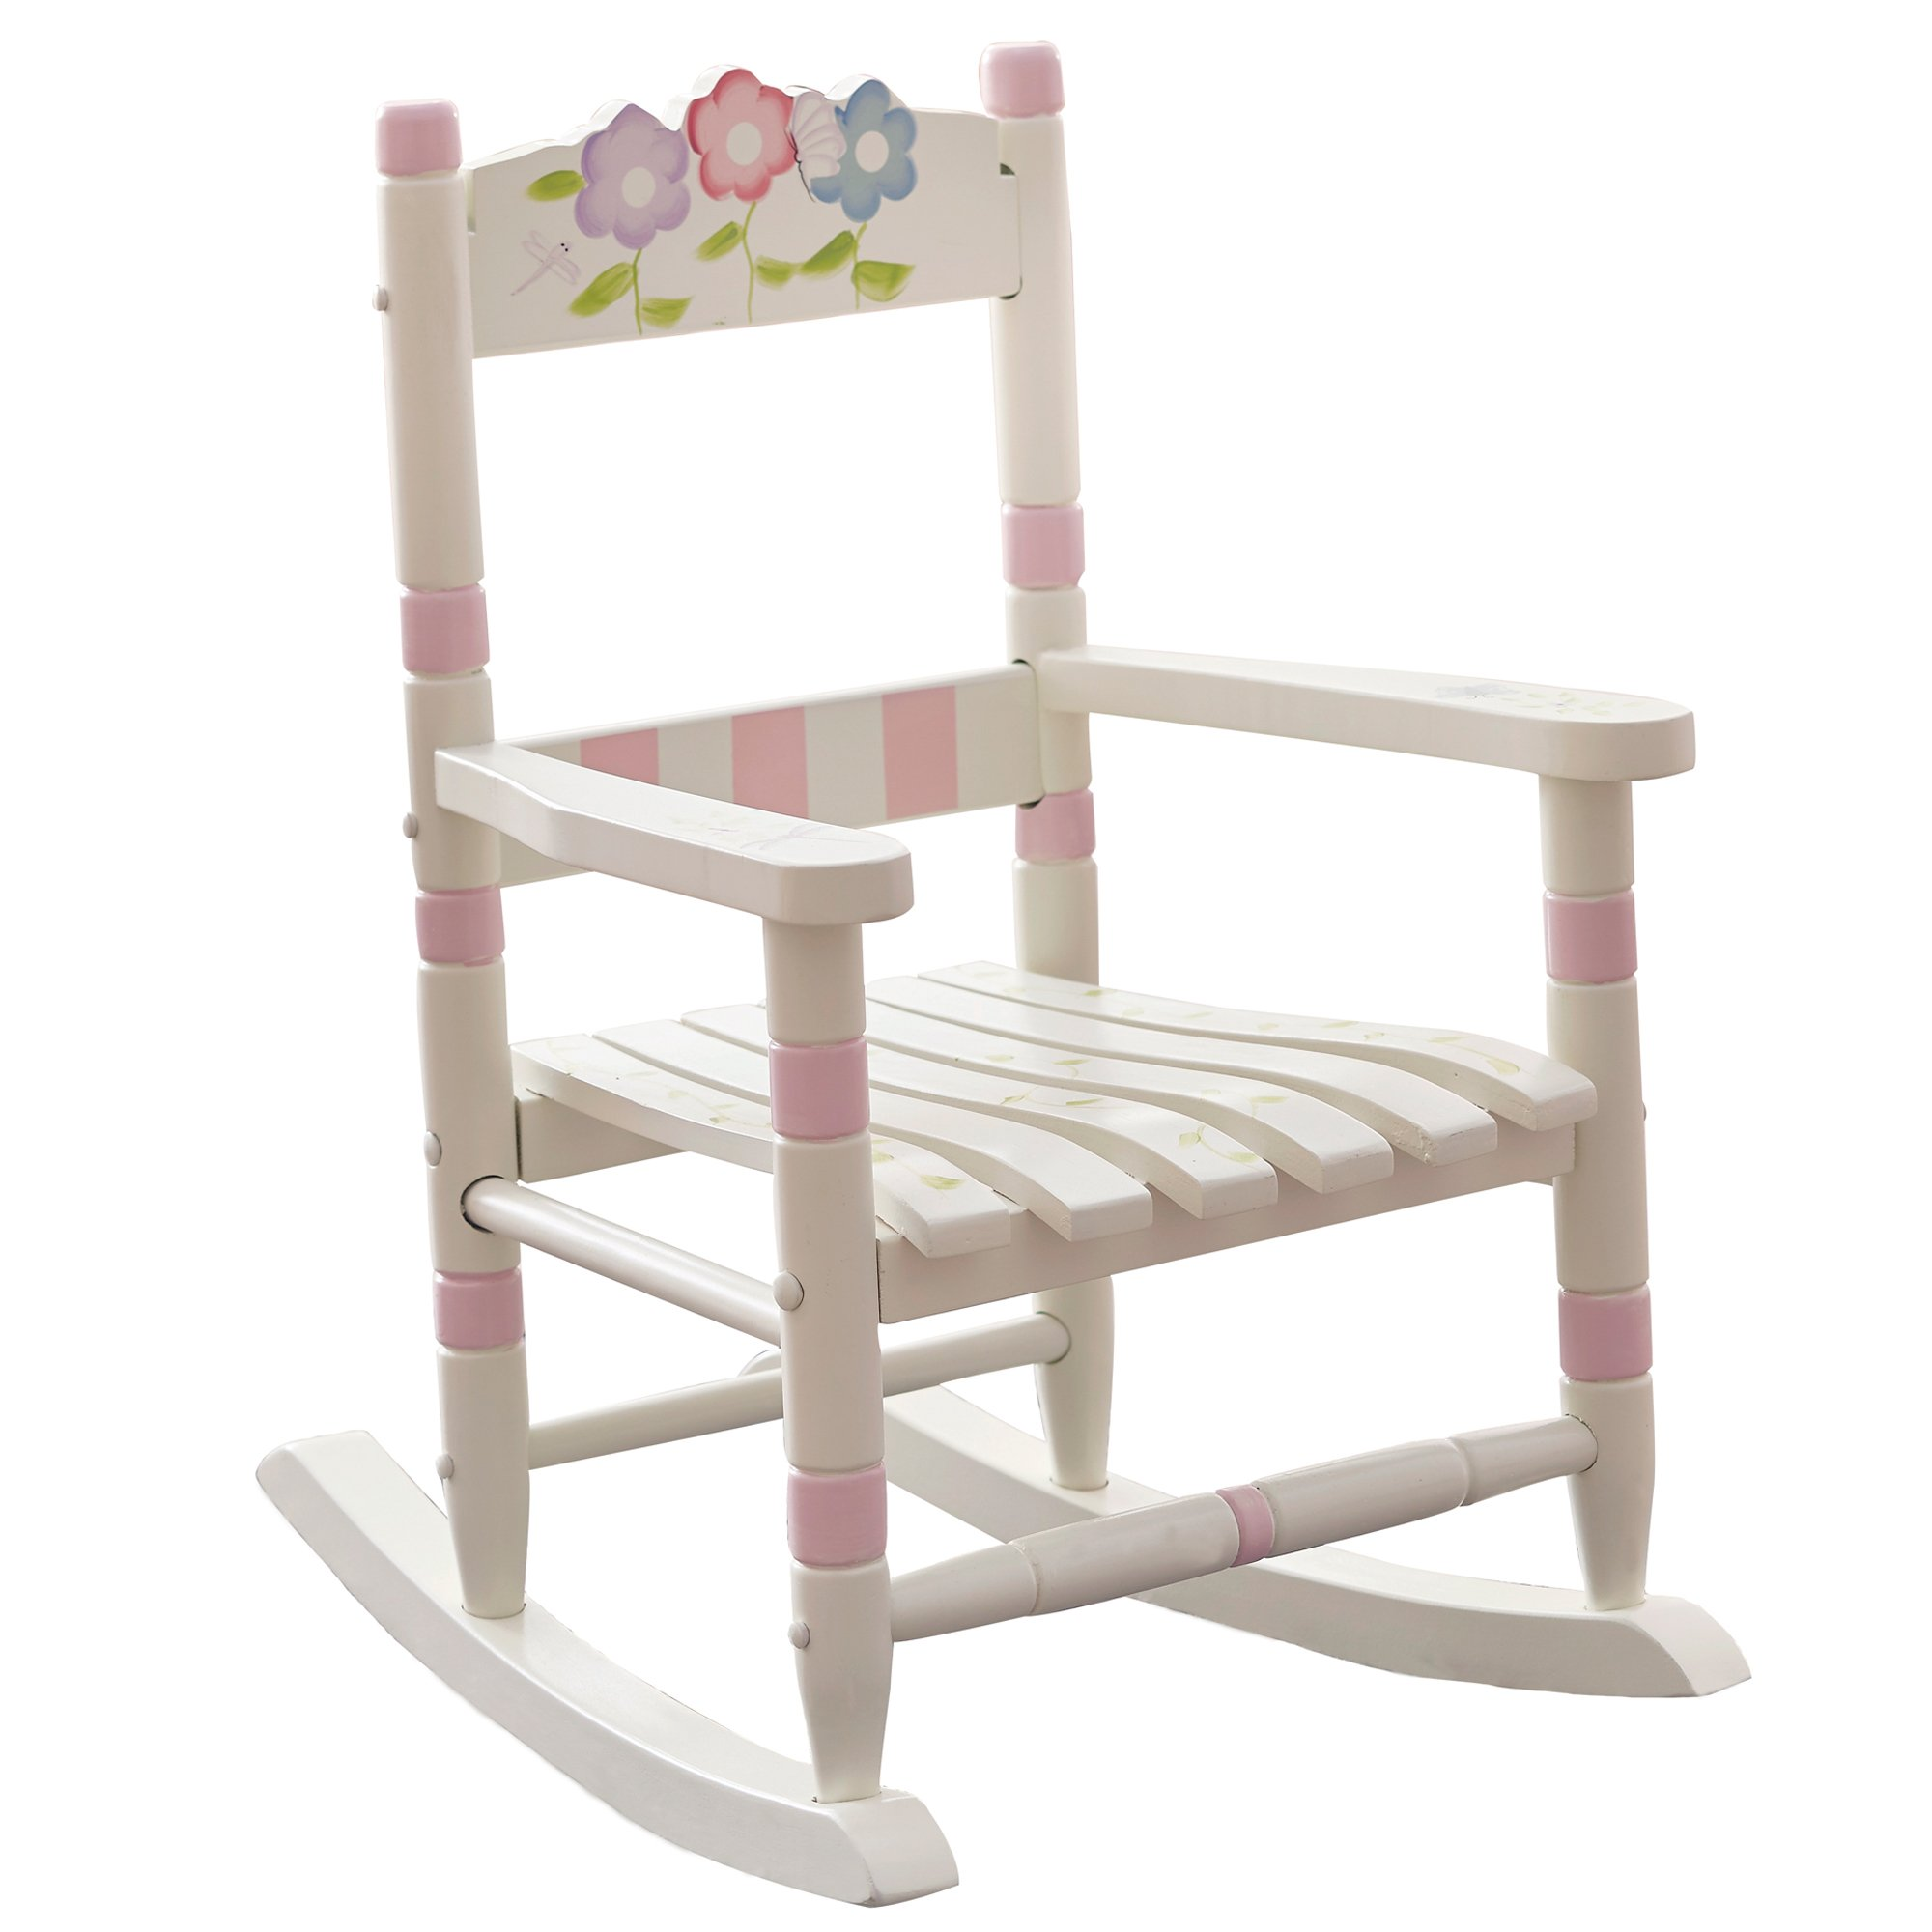 Teamson Design Corp Fantasy Fields - Bouquet Thematic Kids Wooden Rocking Chair Imagination Inspiring Hand Crafted & Hand Painted Details Non-Toxic, Lead Free Water-based Paint by Teamson Design Corp (Image #8)